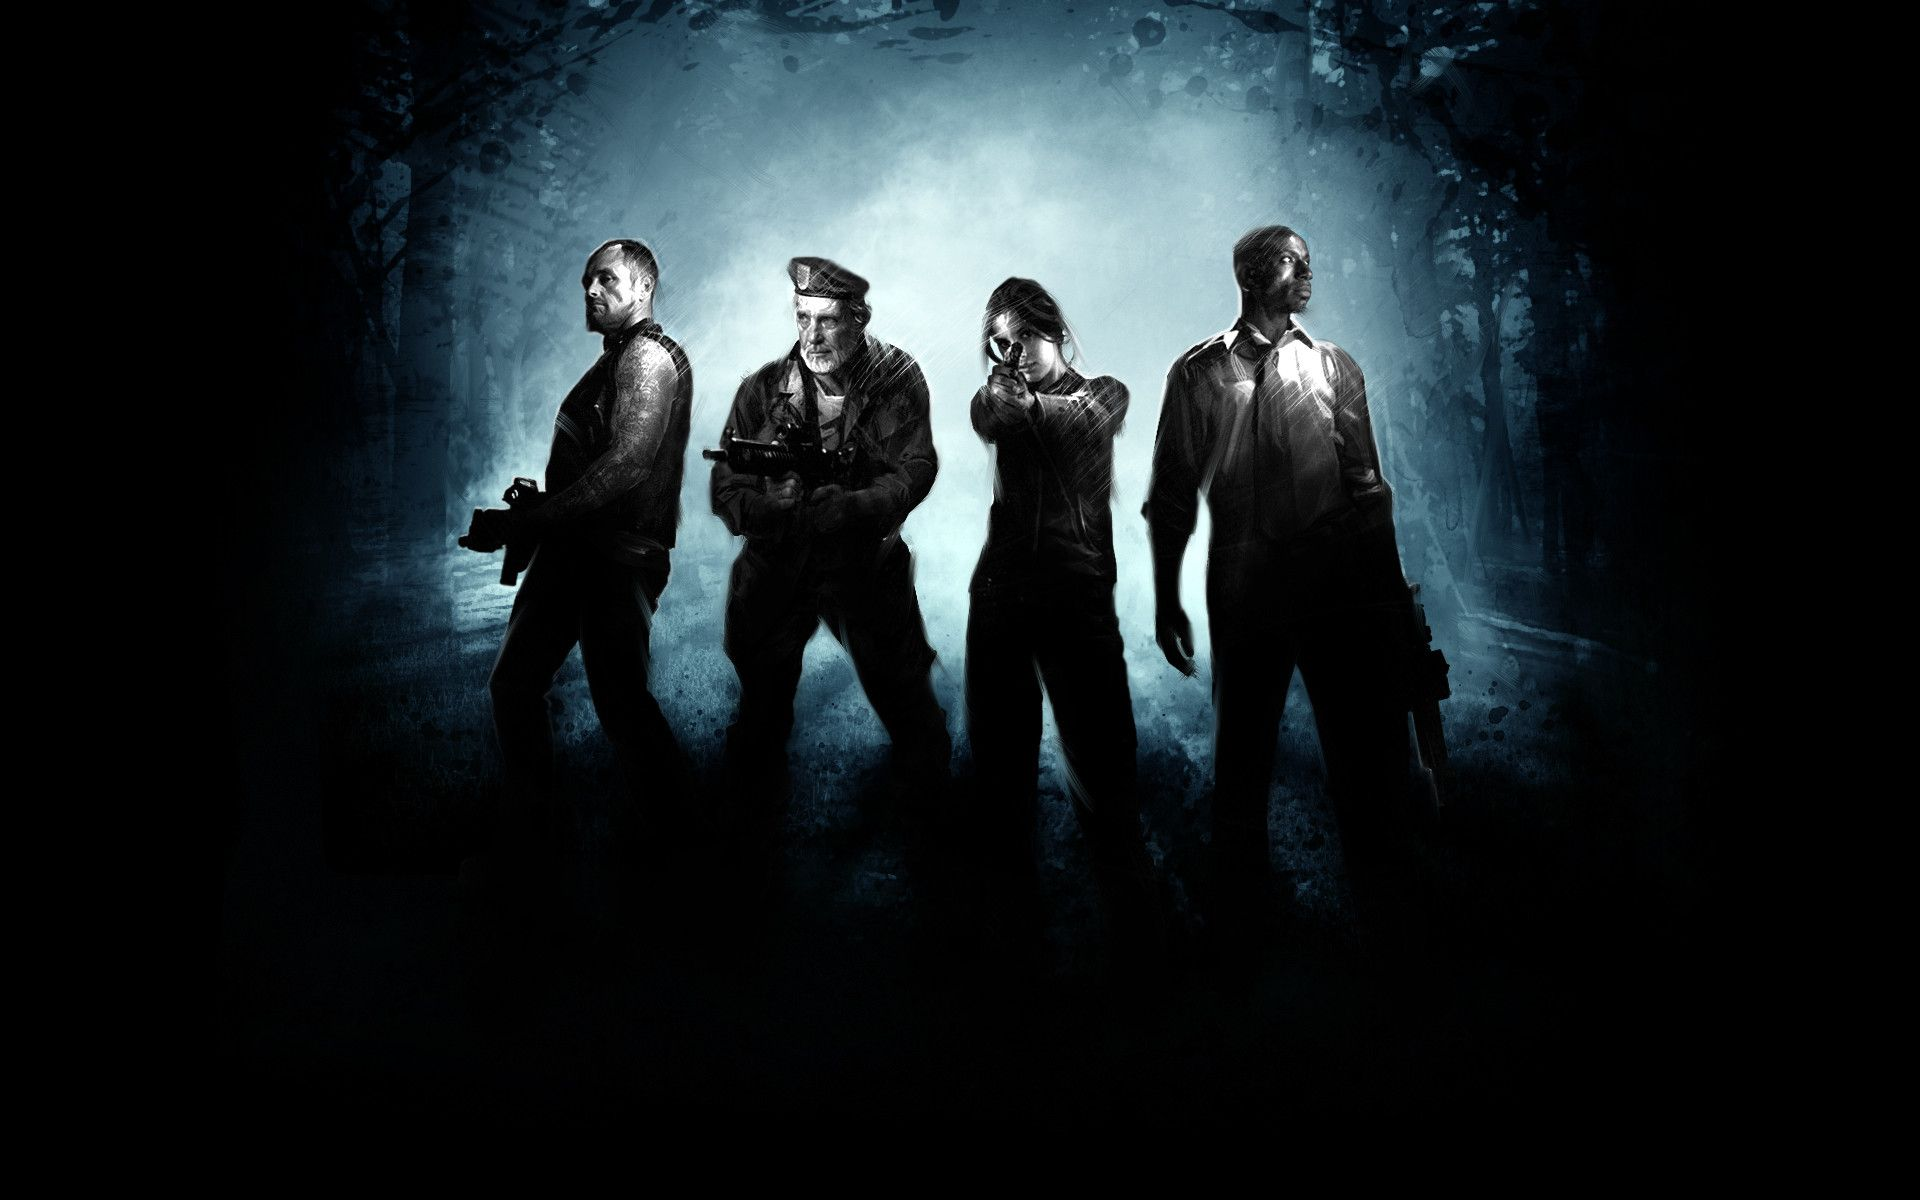 Res 1920x1200 Video Game Left 4 Dead Wallpaper Faby